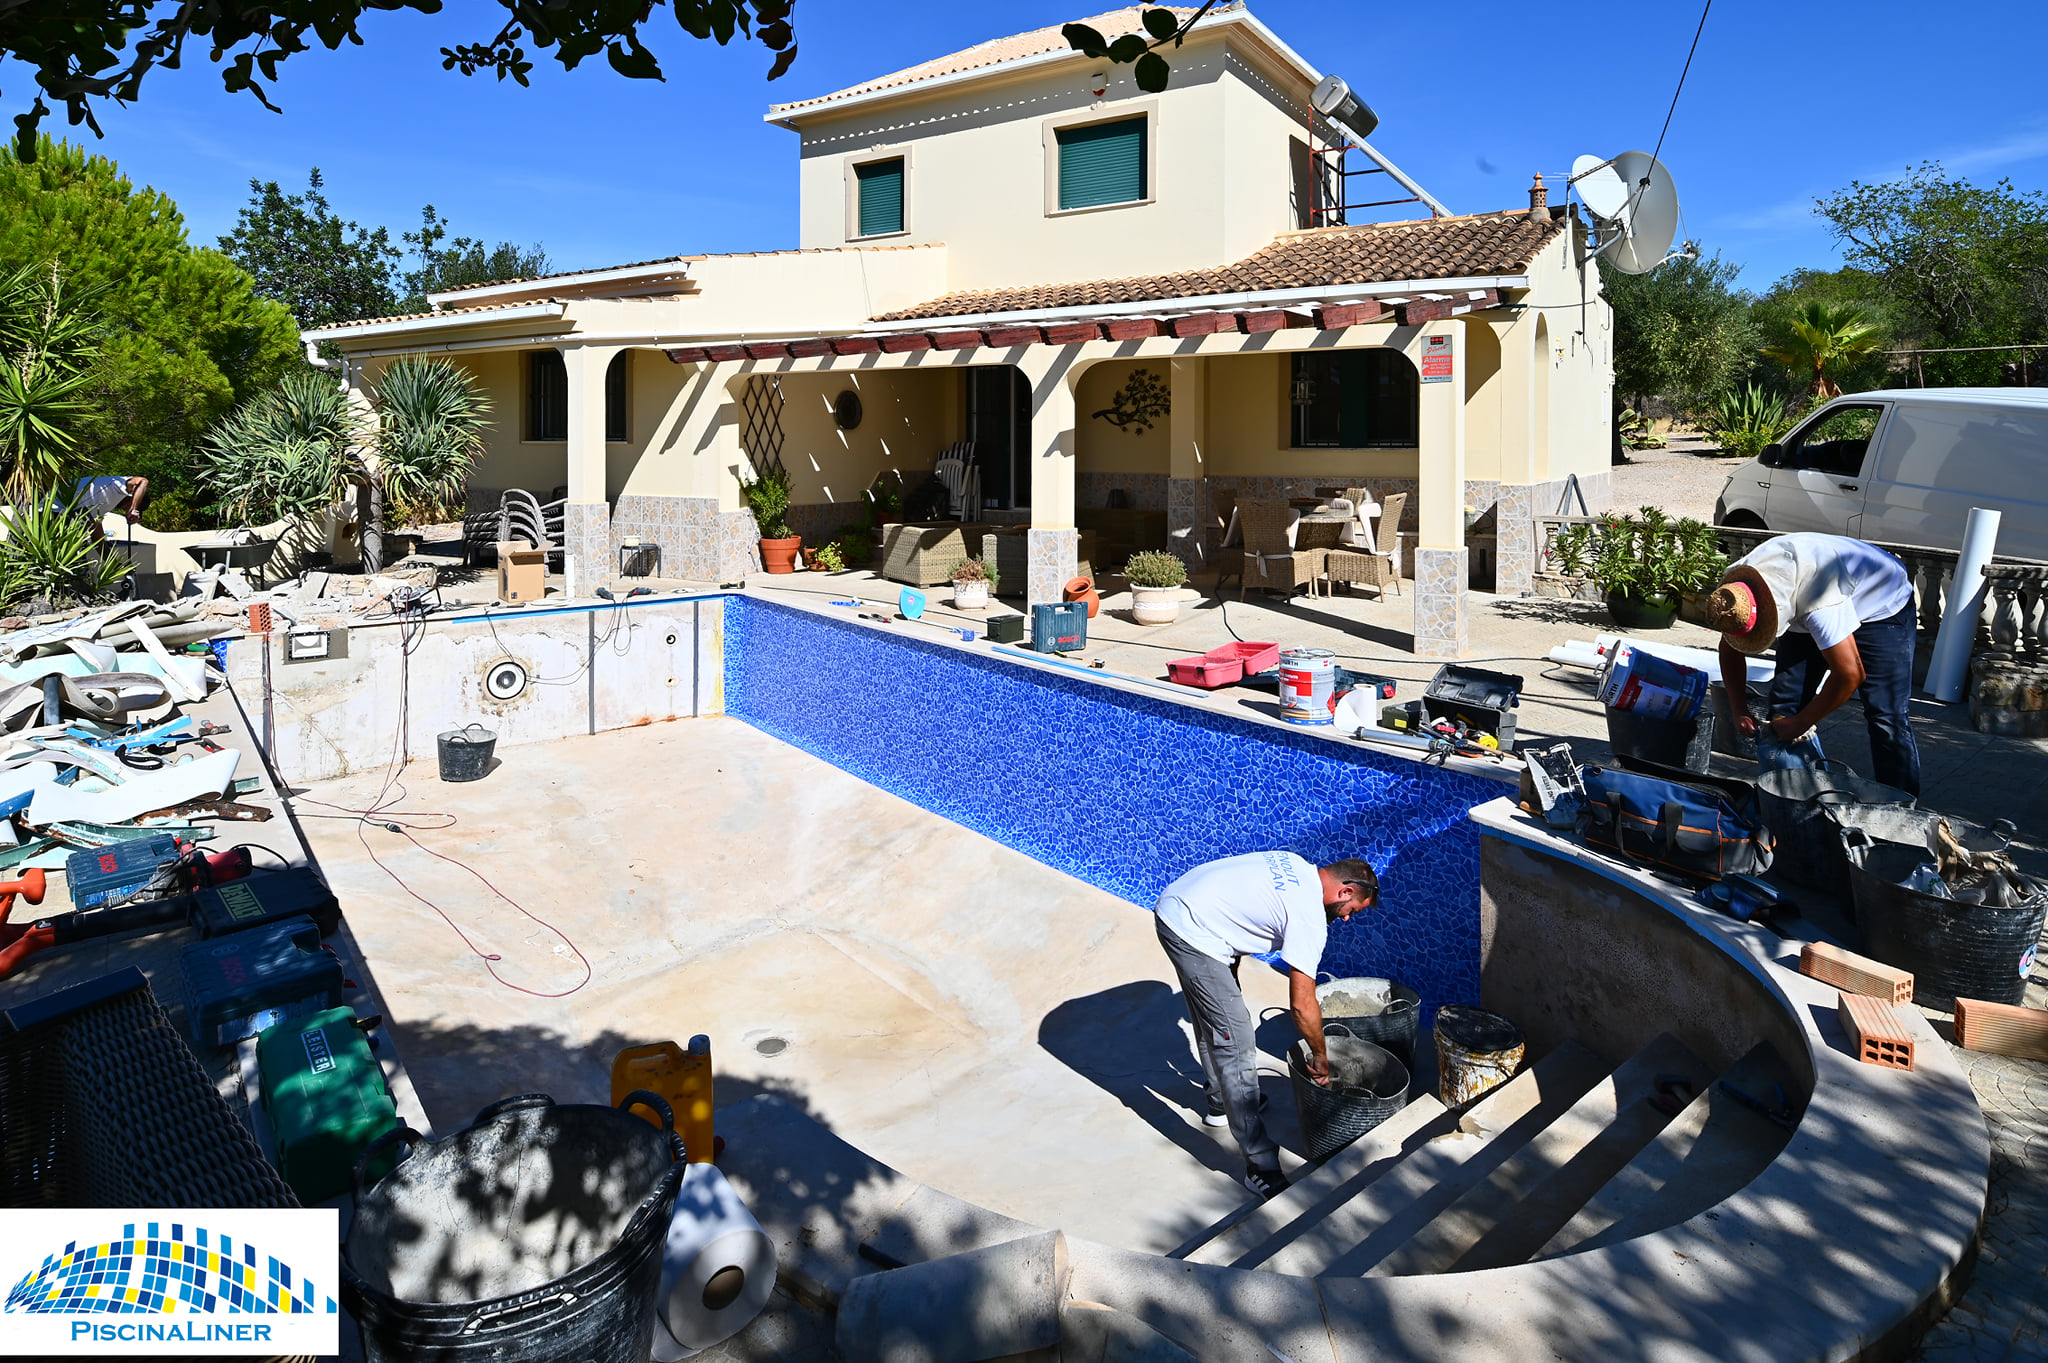 Algarve pool repairs